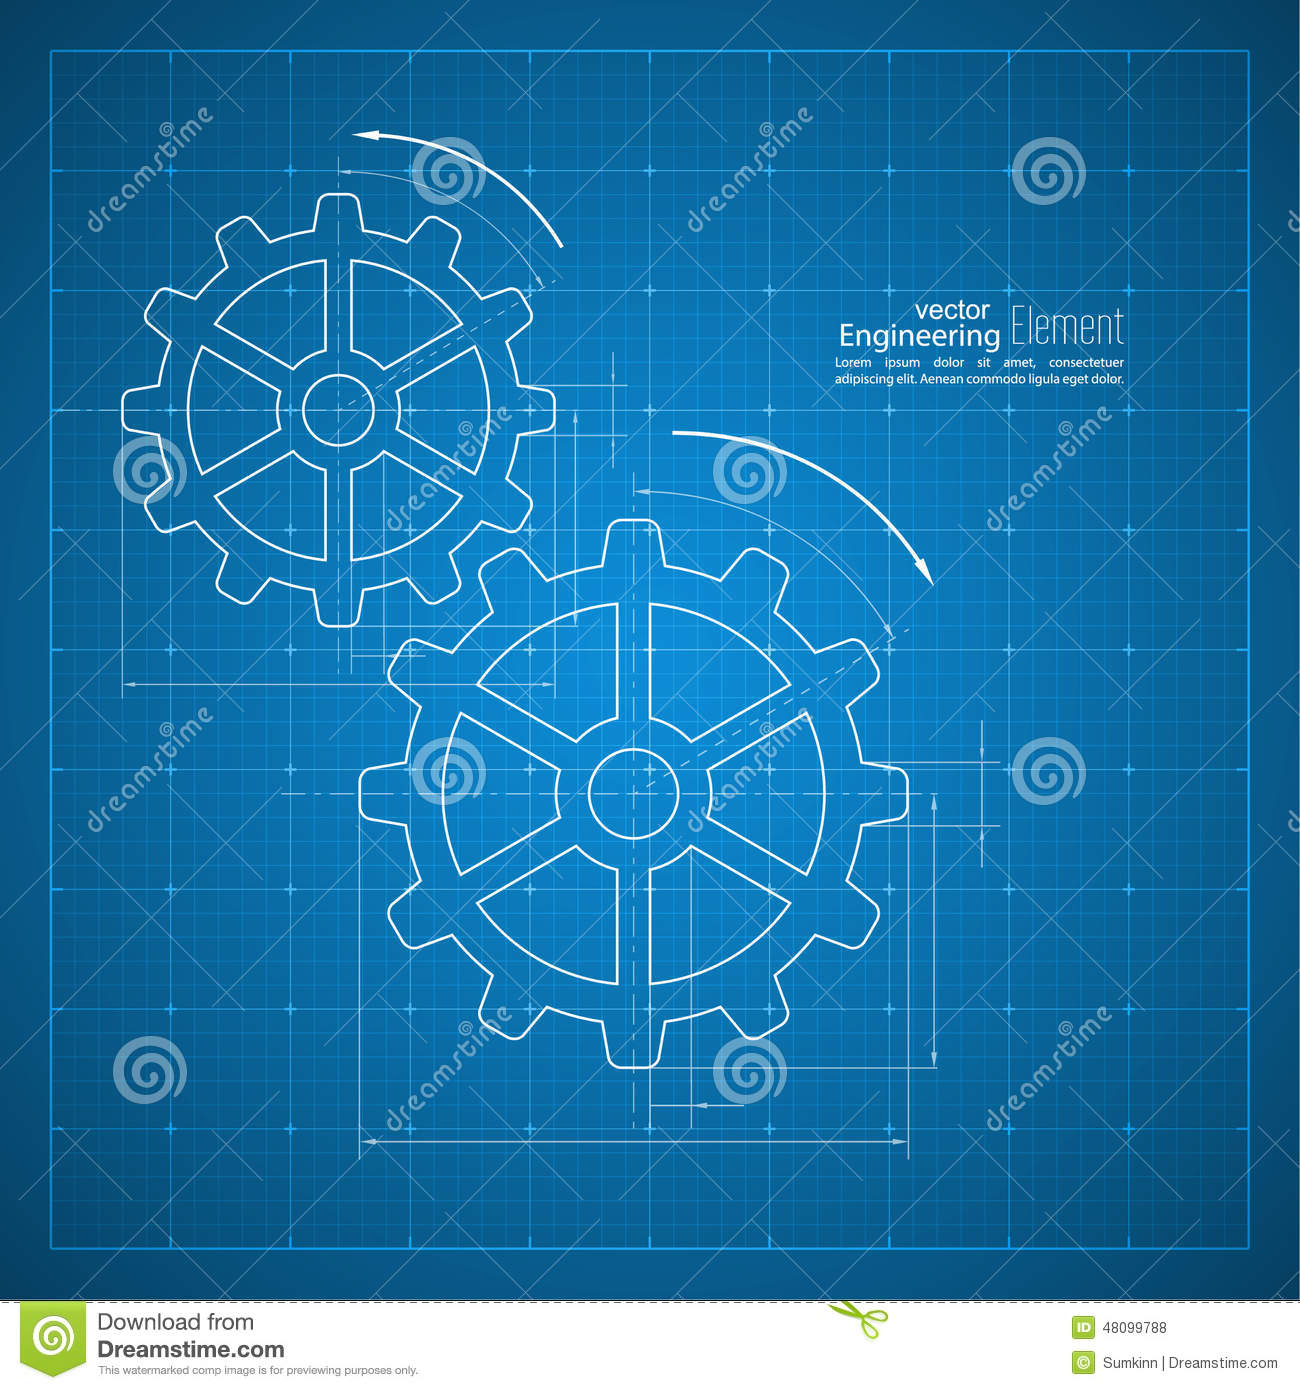 Gears symbol on the drawing paper stock vector illustration of gears symbol on the drawing paper malvernweather Images